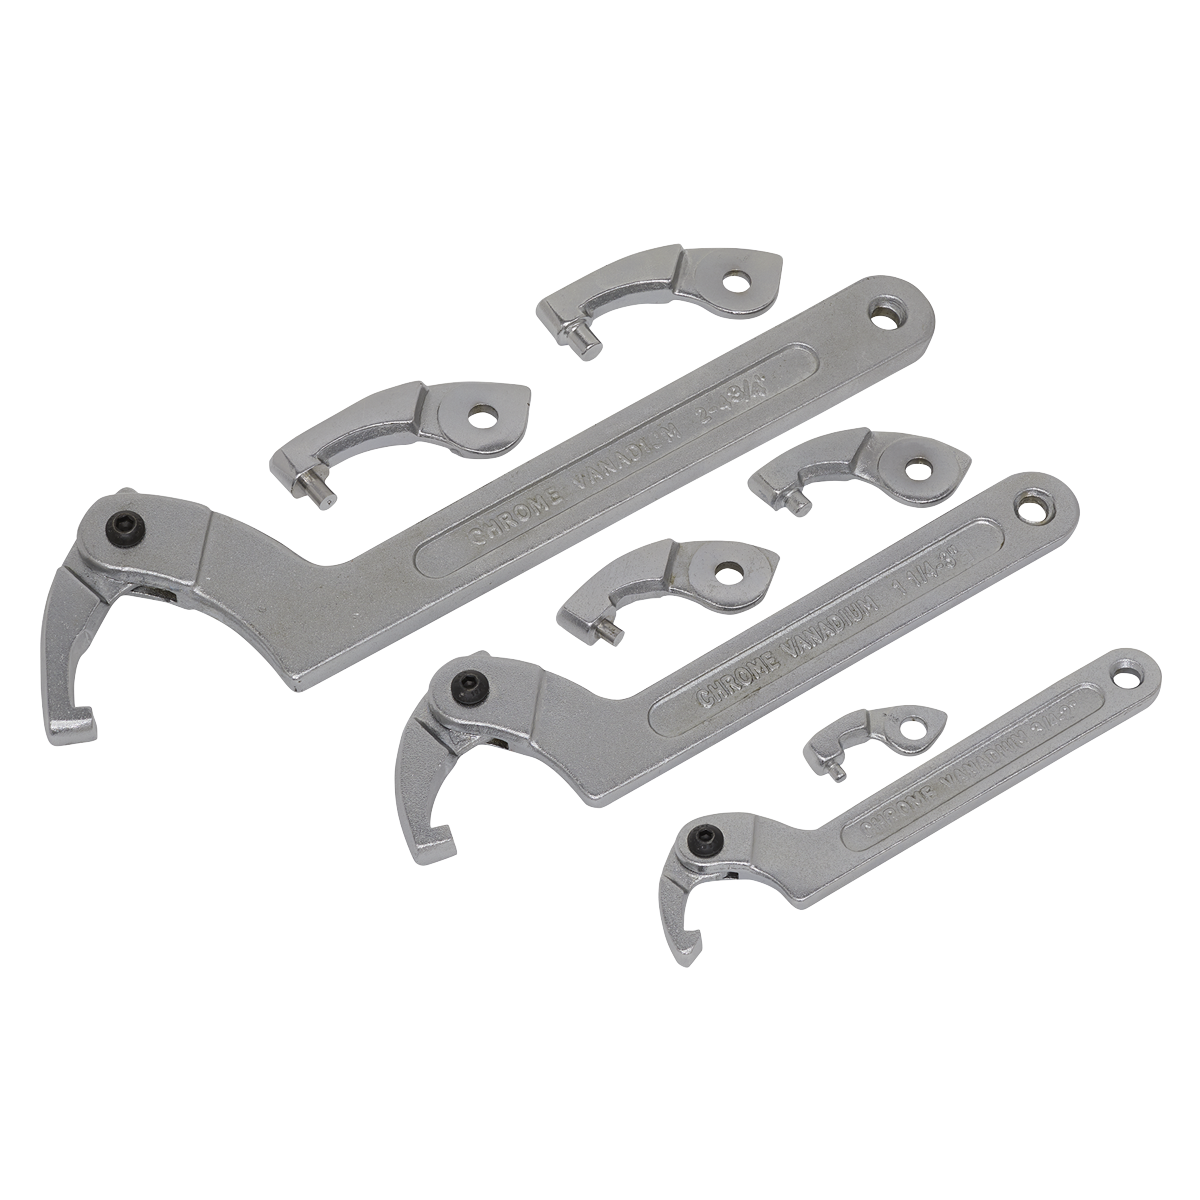 Adjustable C Spanner - Hook & Pin Wrench Set 11pc